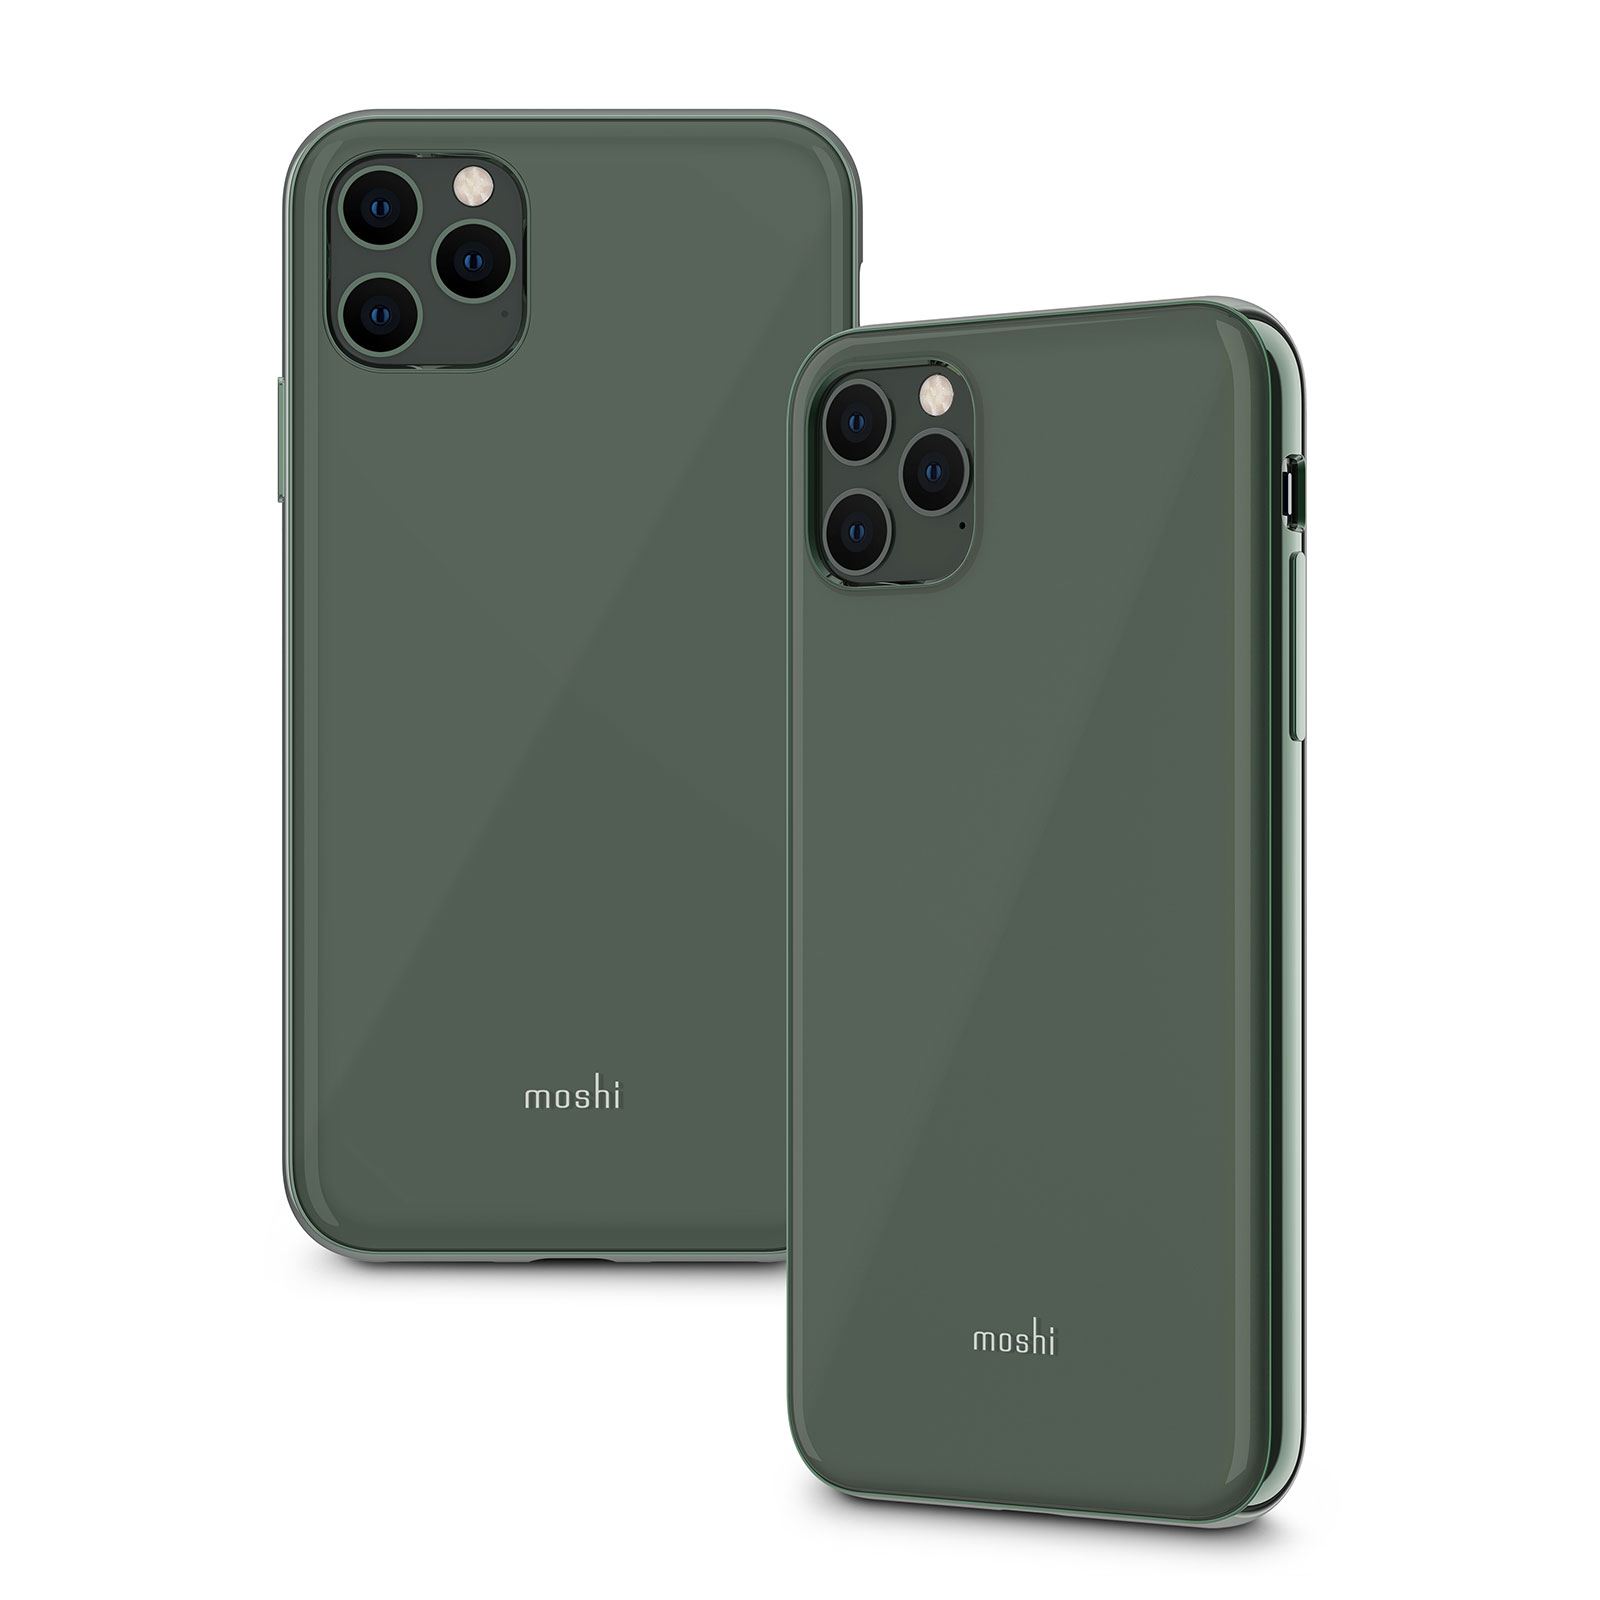 Iphone 11 Pro Max Case Shop Iphone Protection Midnight Green Iglaze By Moshi